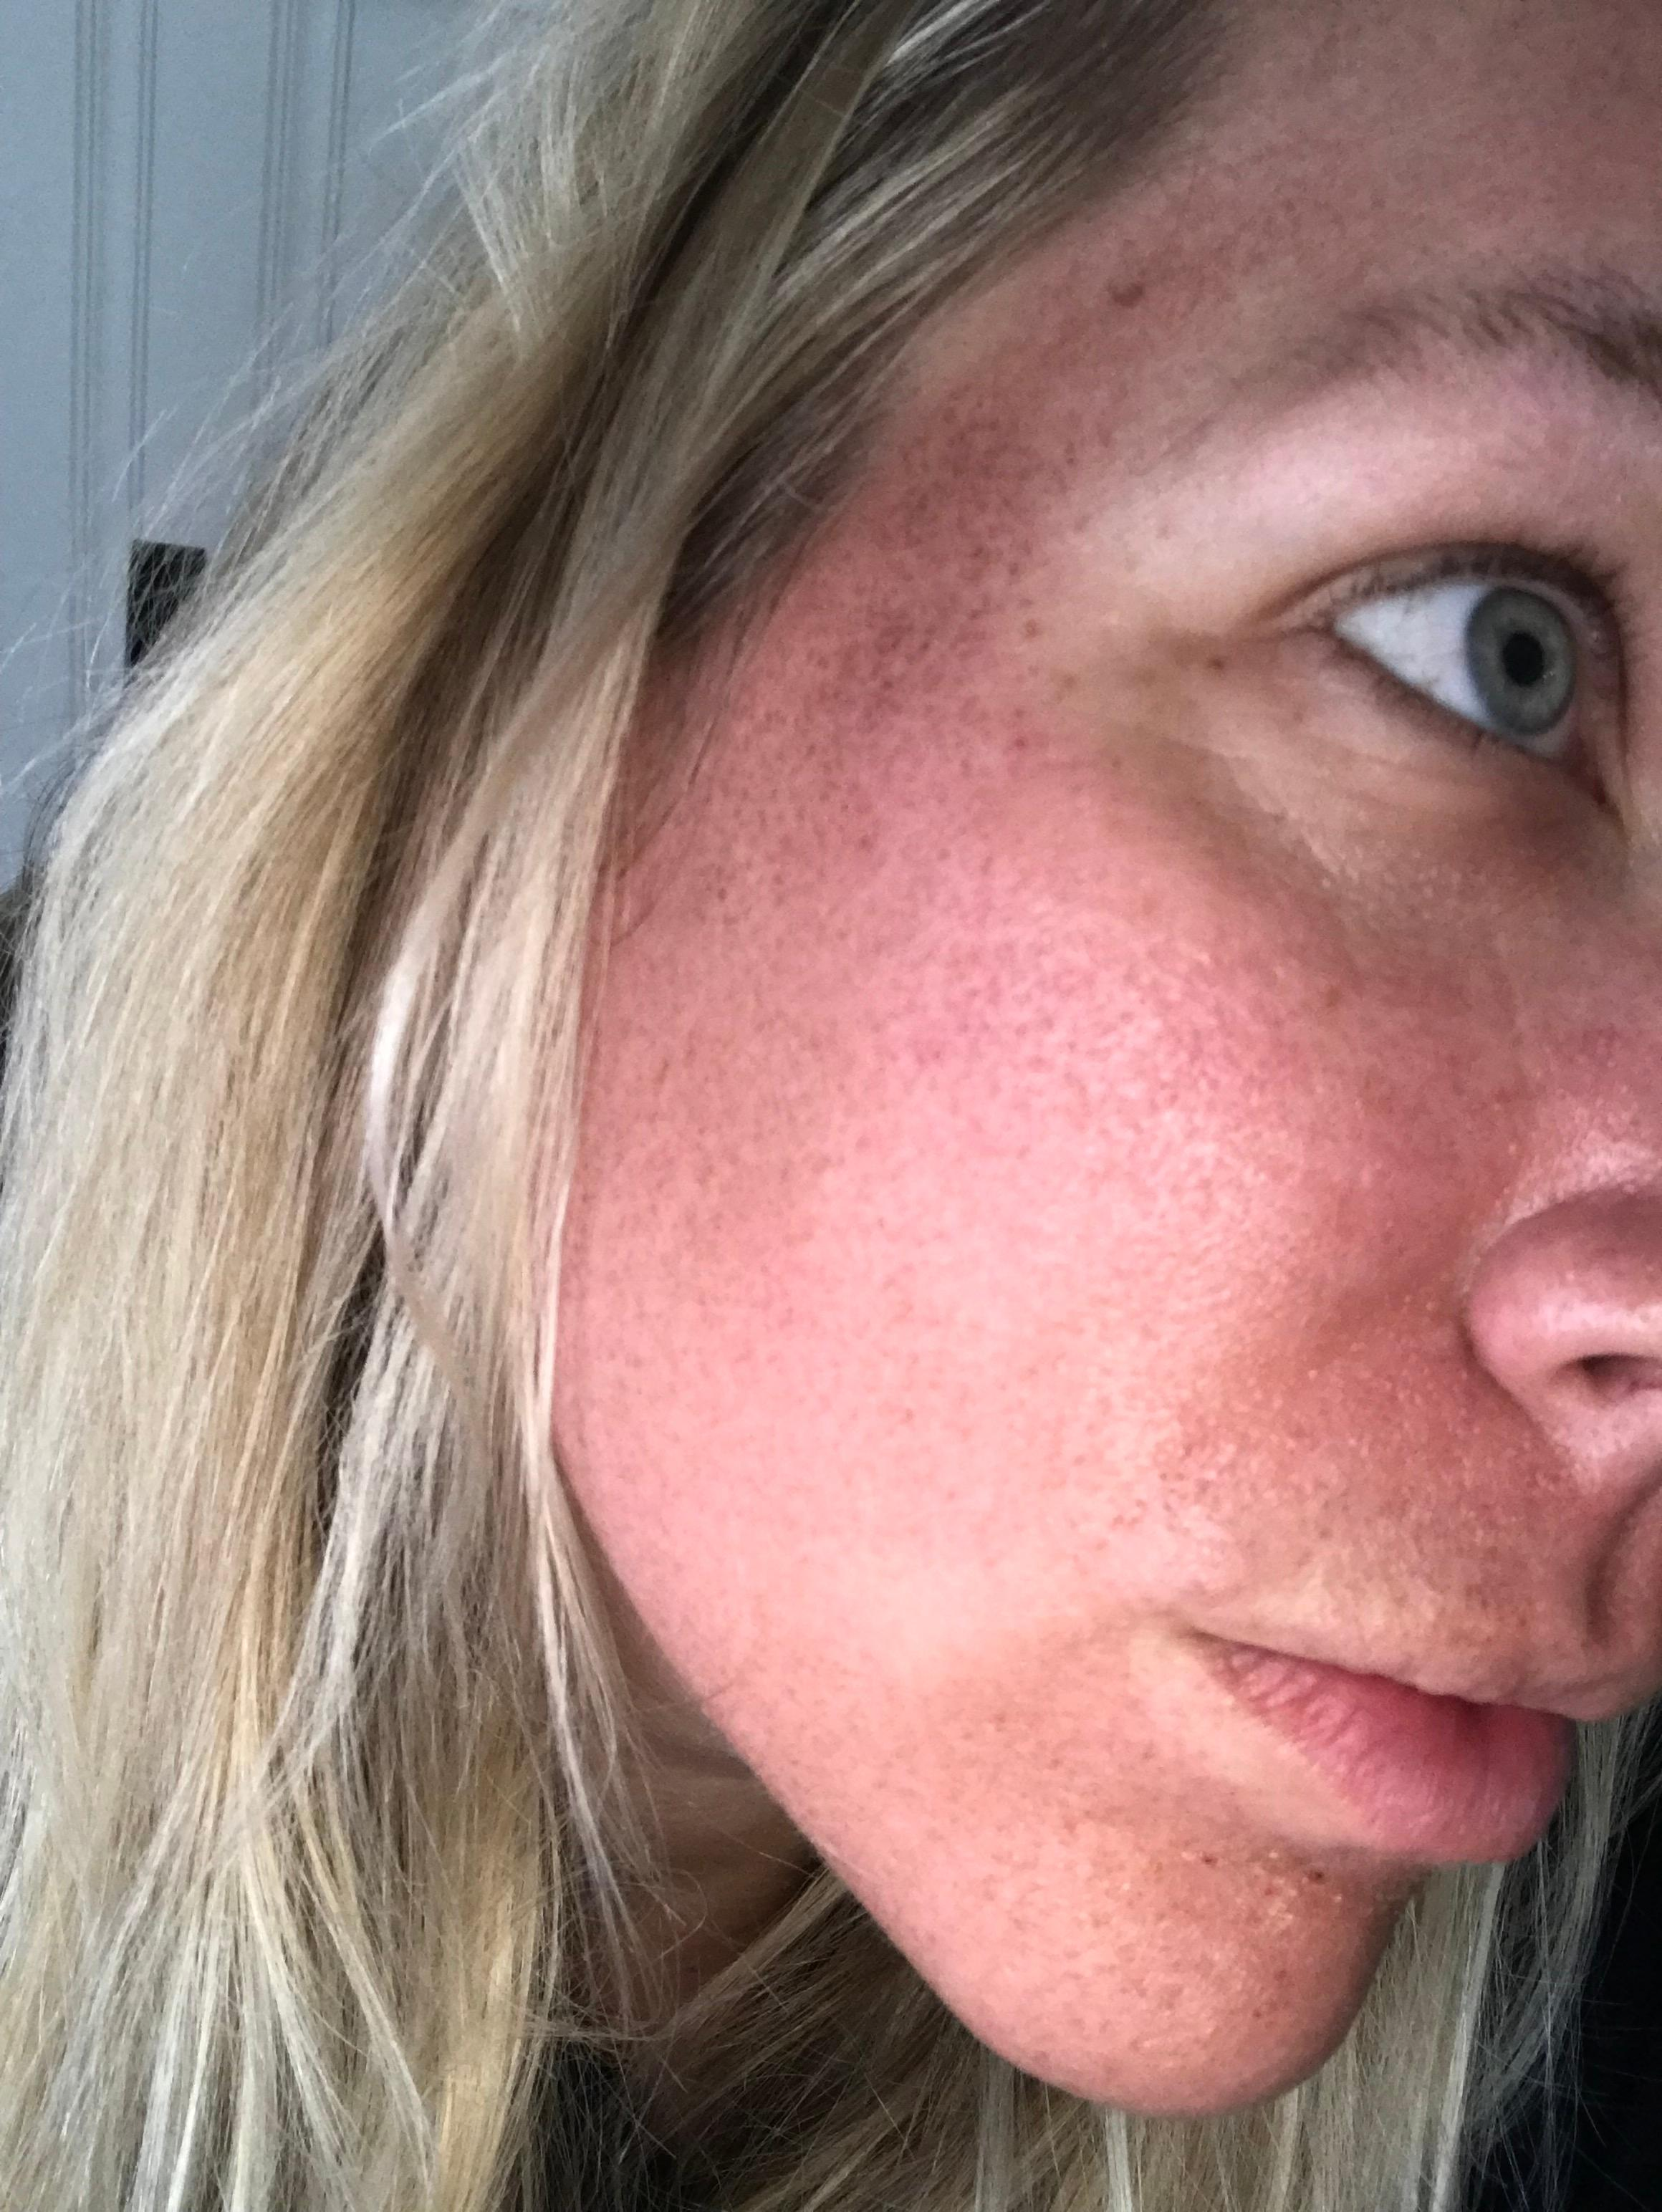 <p>MENDS started to show, they look like a bunch of tiny freckles.{&nbsp;} This is totally normal and doesn't hurt at all. (Image: Kate Neidigh){&nbsp;}</p>